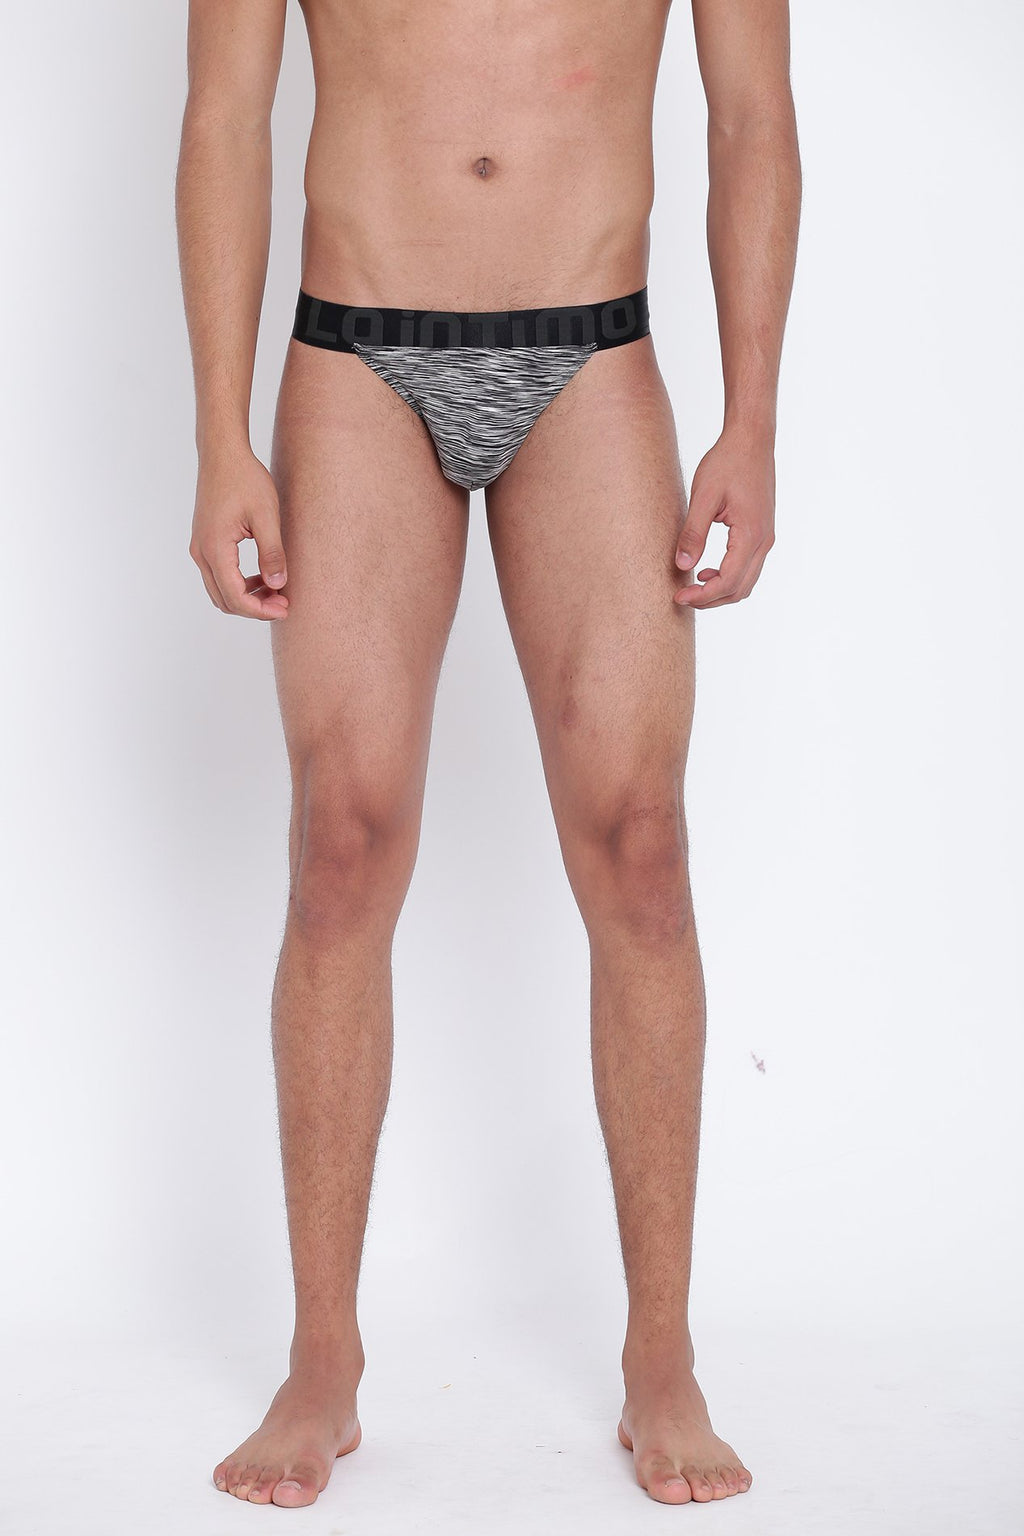 La Intimo, Male, Strip Grip LaIntimo Jock, Men, LIJO022GY0_XL, LIJO022GY0